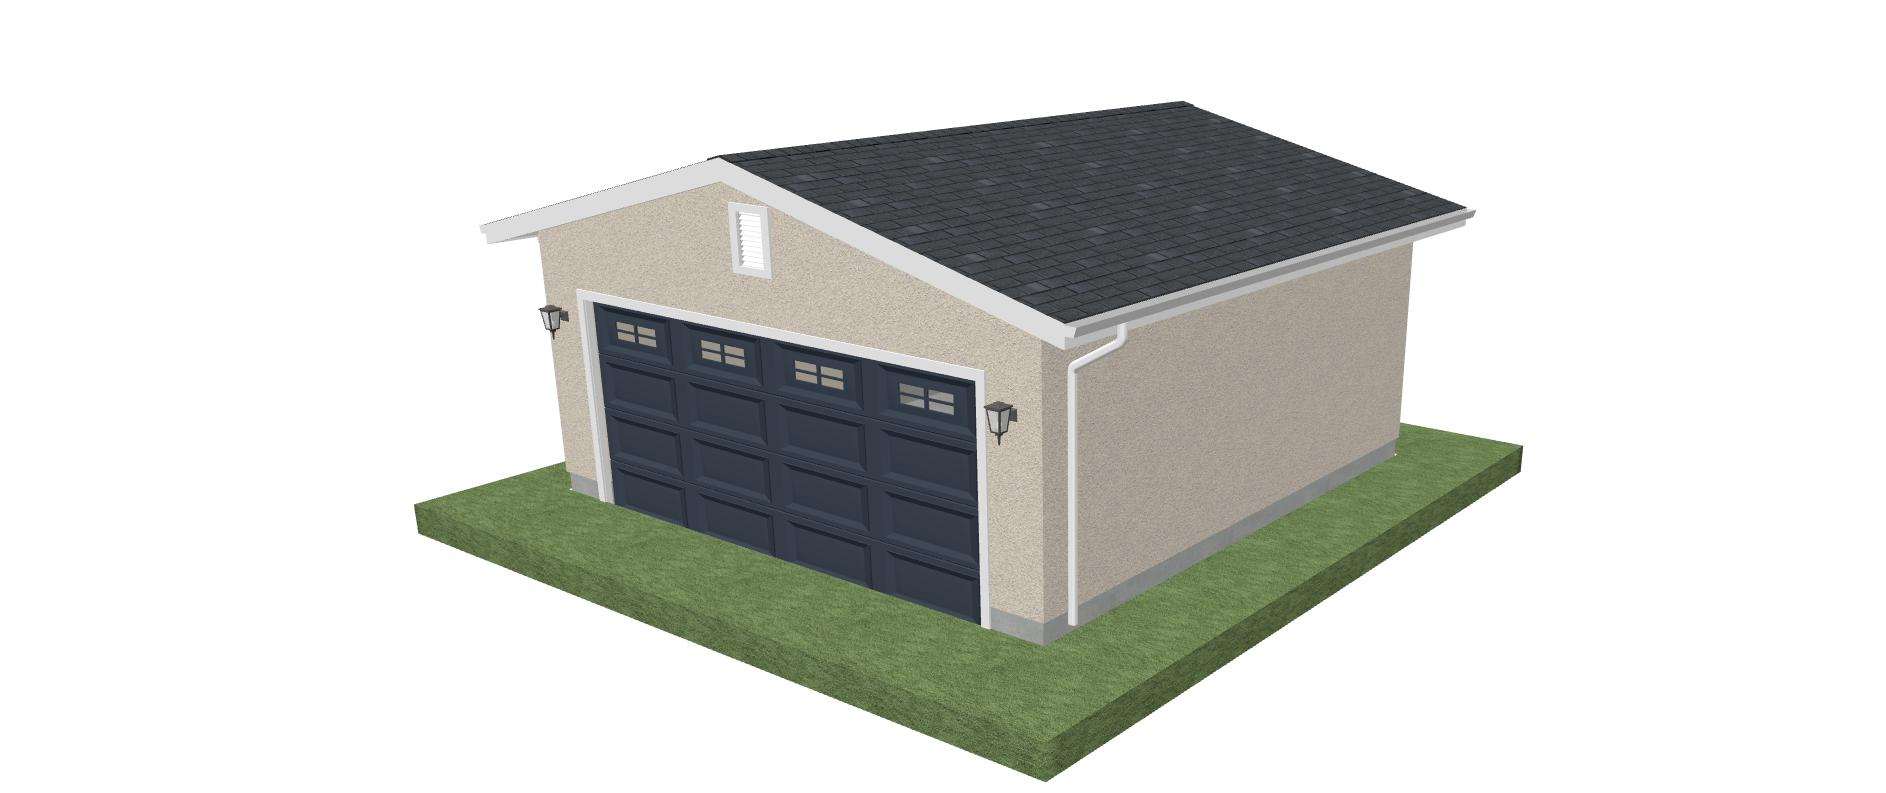 Predesigned projects diy architectural for Sq ft of 2 car garage